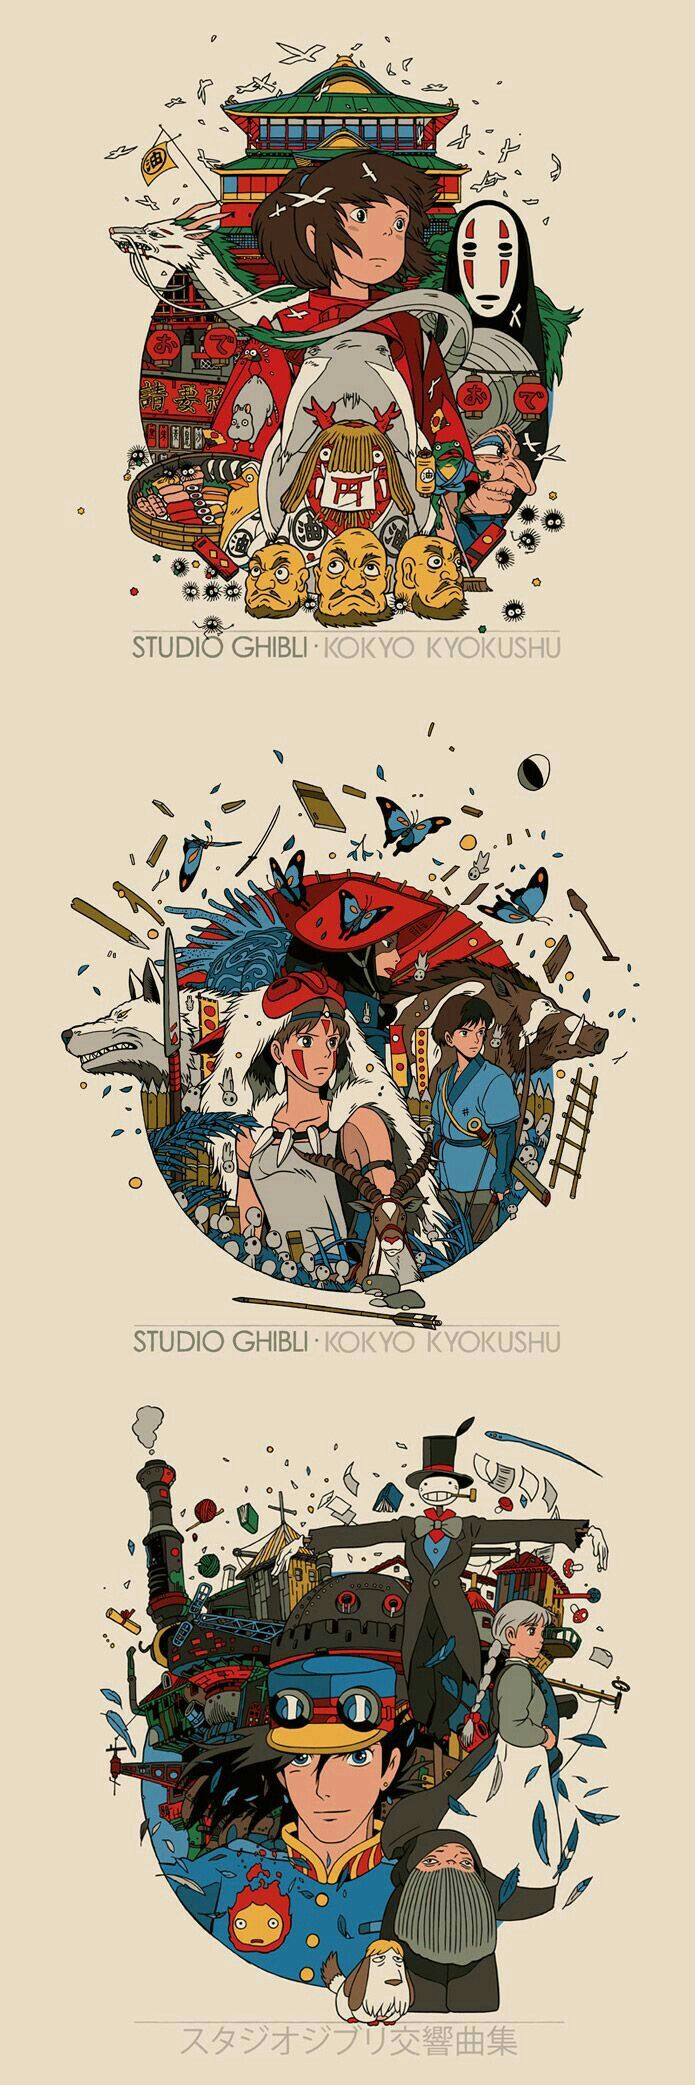 Studio Ghibli characters, Spirited Away, Princess Mononoke, Howl's Moving Castle, text; Studio Ghibli